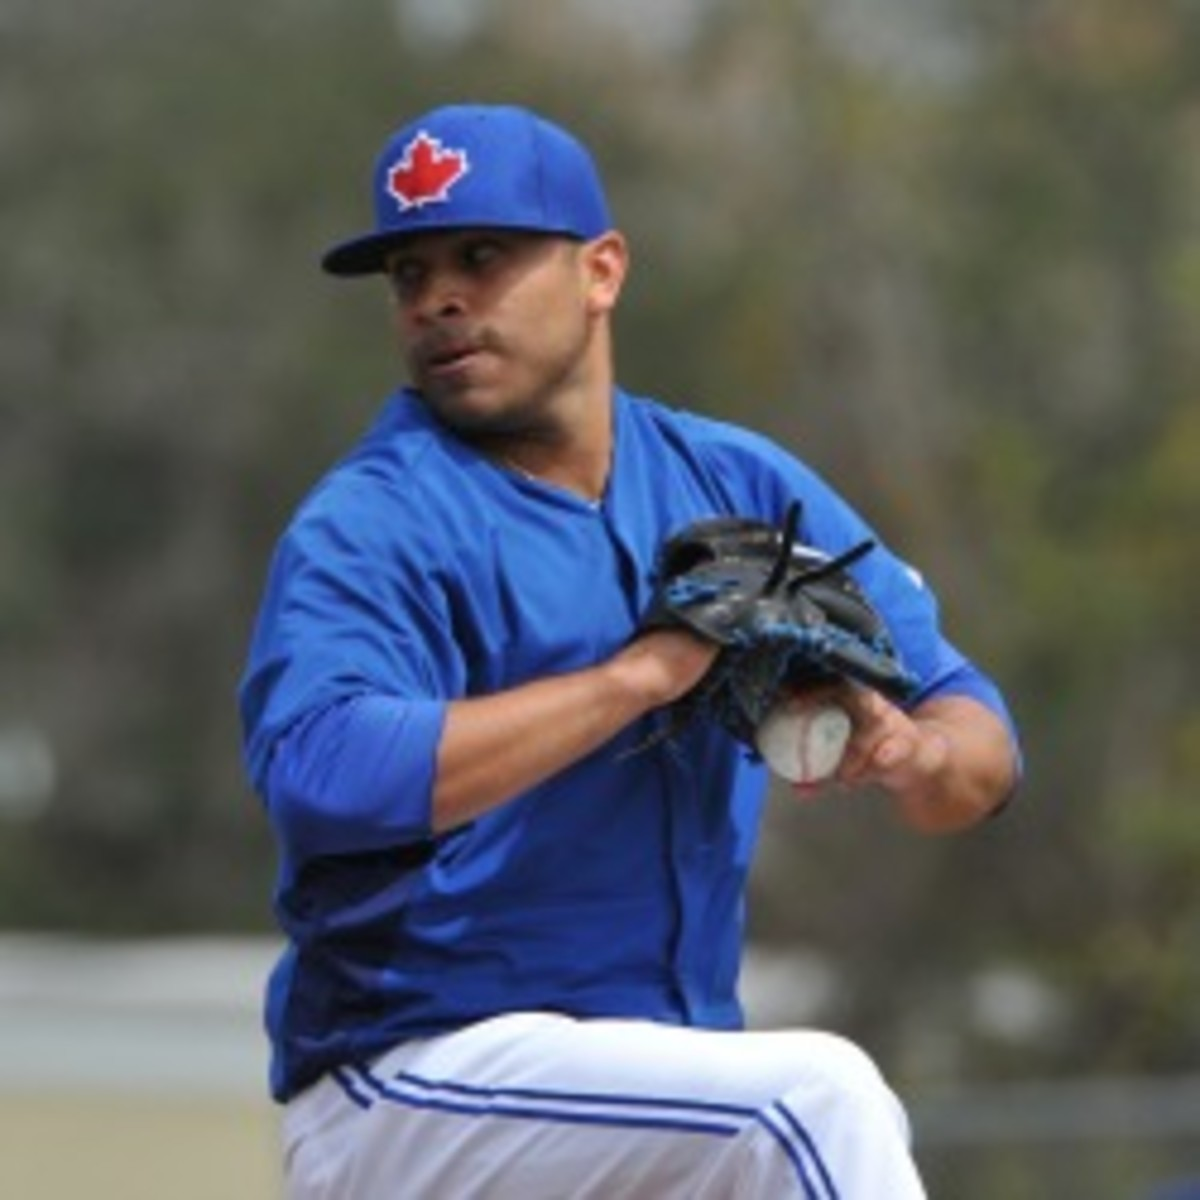 The Blue Jays sent struggling pitcher Ricky Romero to the minors to work out issues. (Al Messerschmidt/Getty Images)